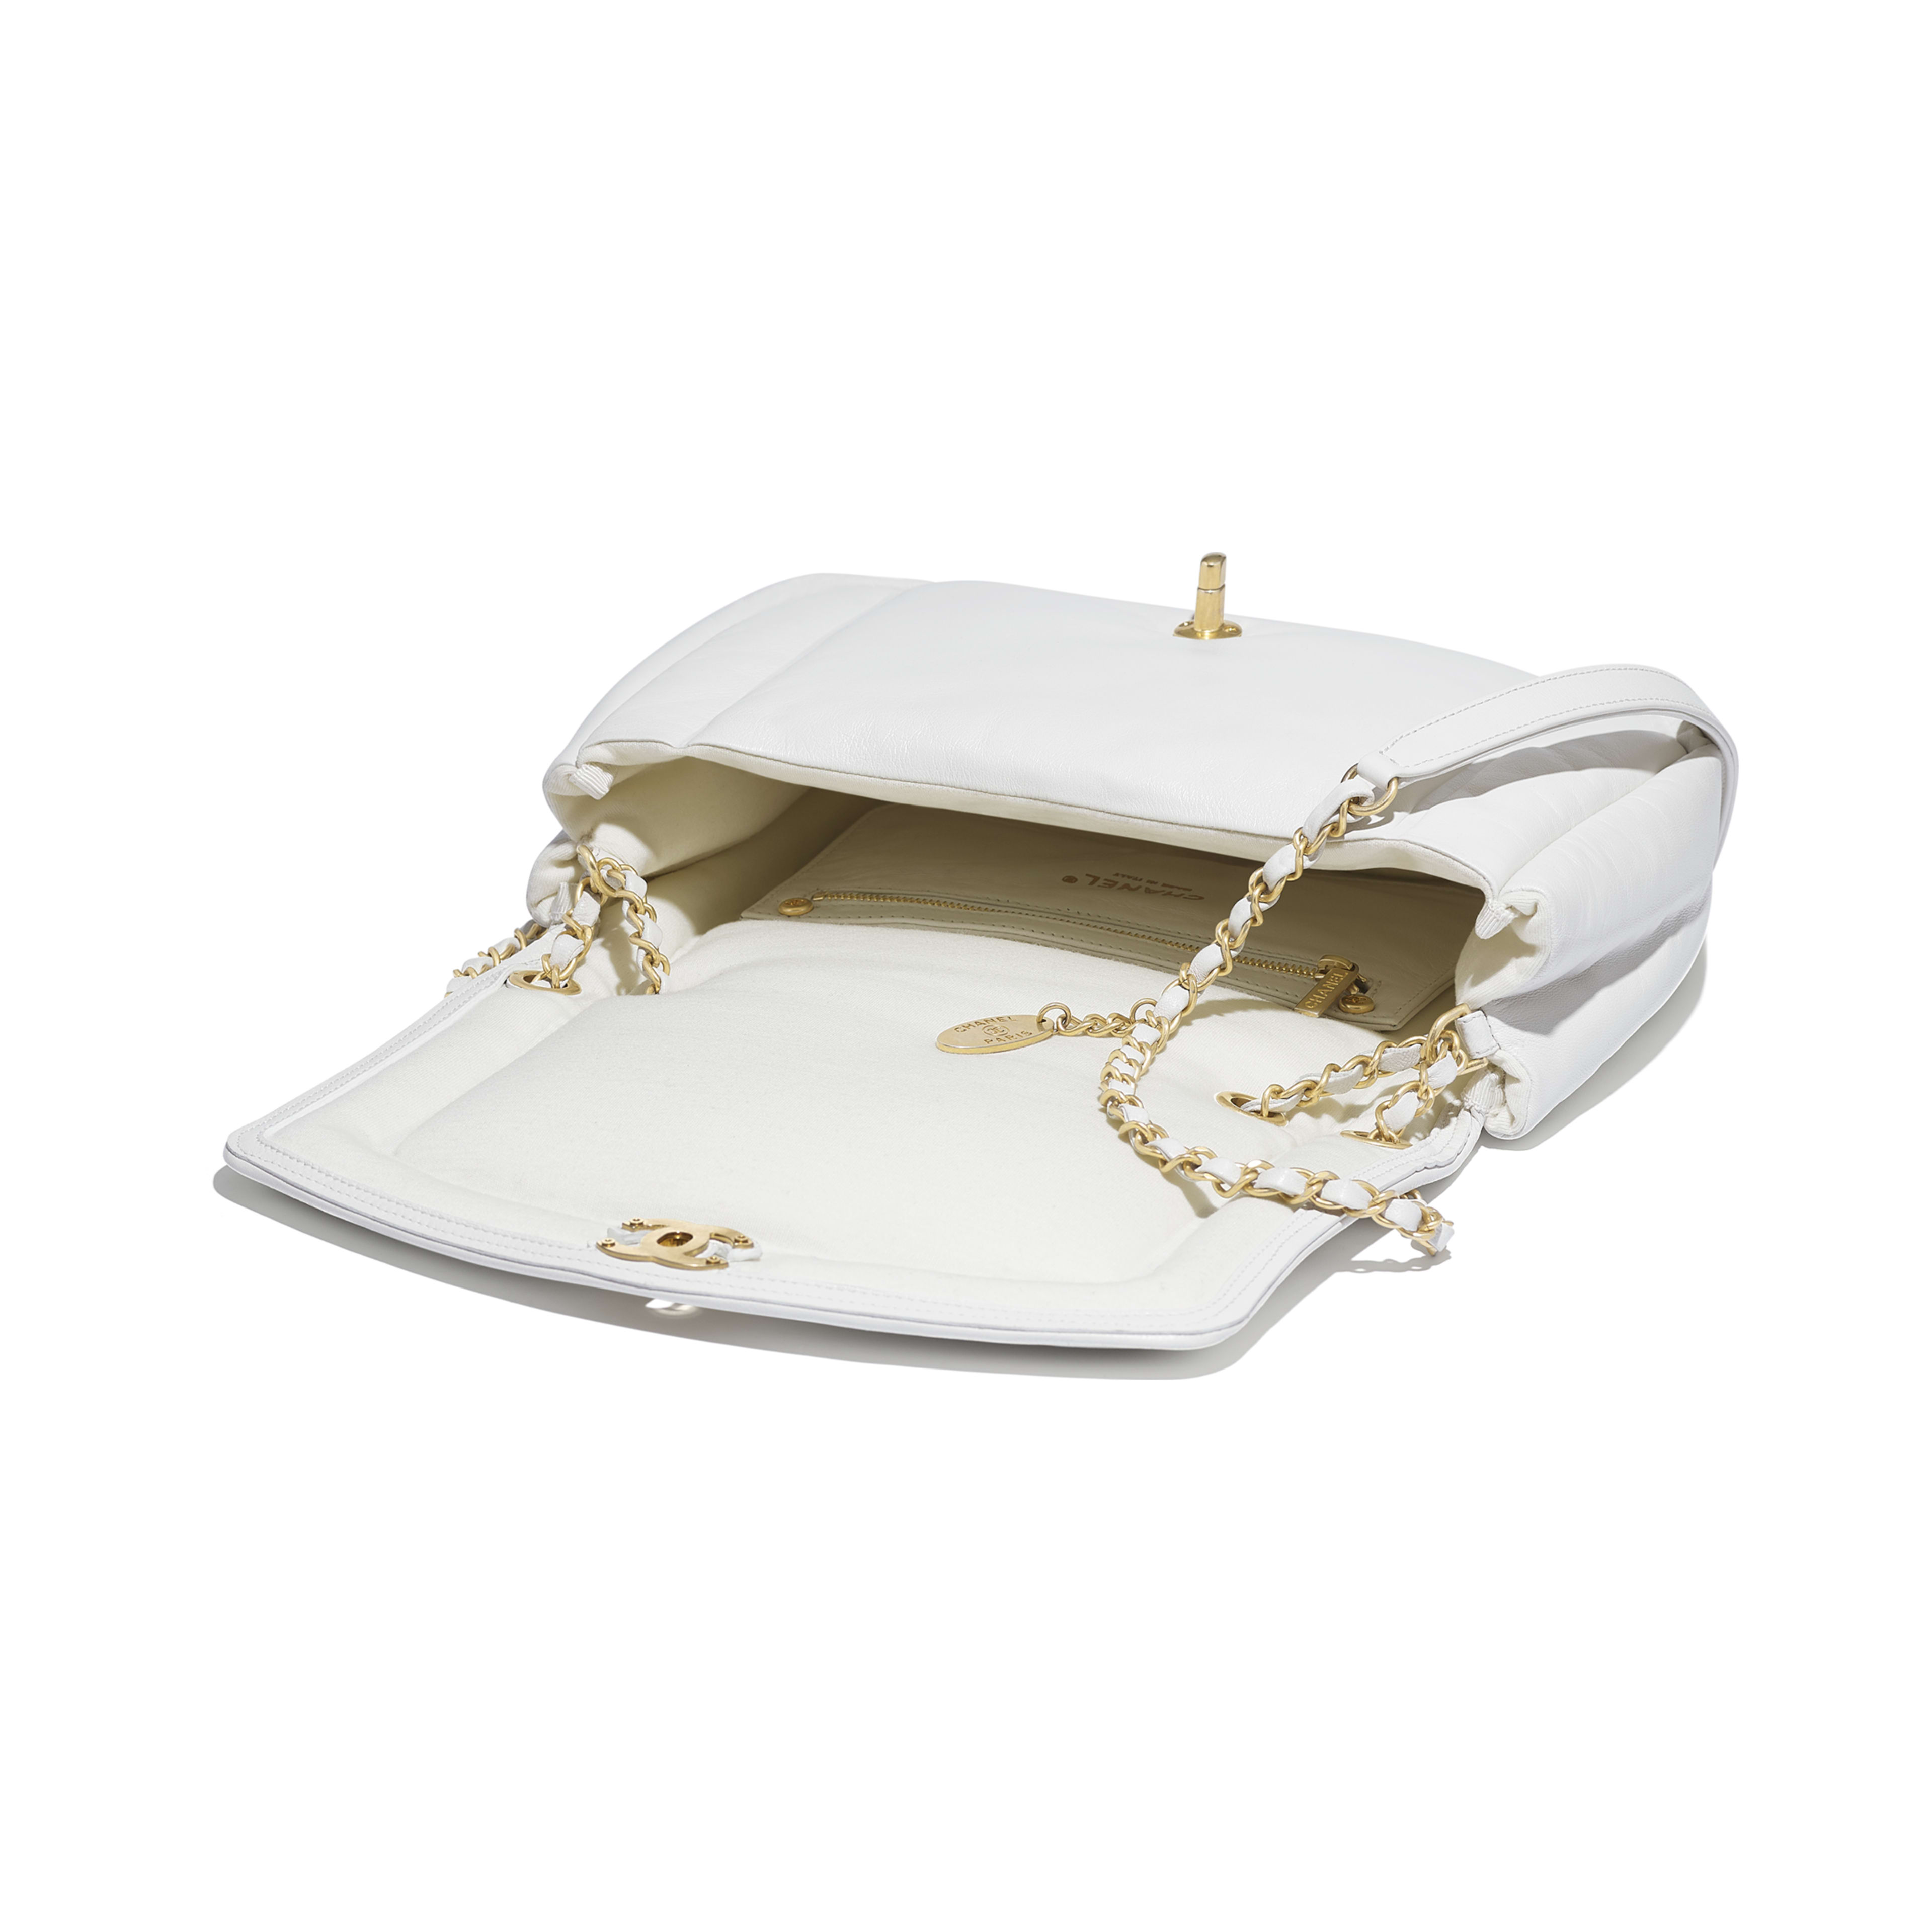 Flap Bag - White - Lambskin & Gold-Tone Metal - Other view - see full sized version